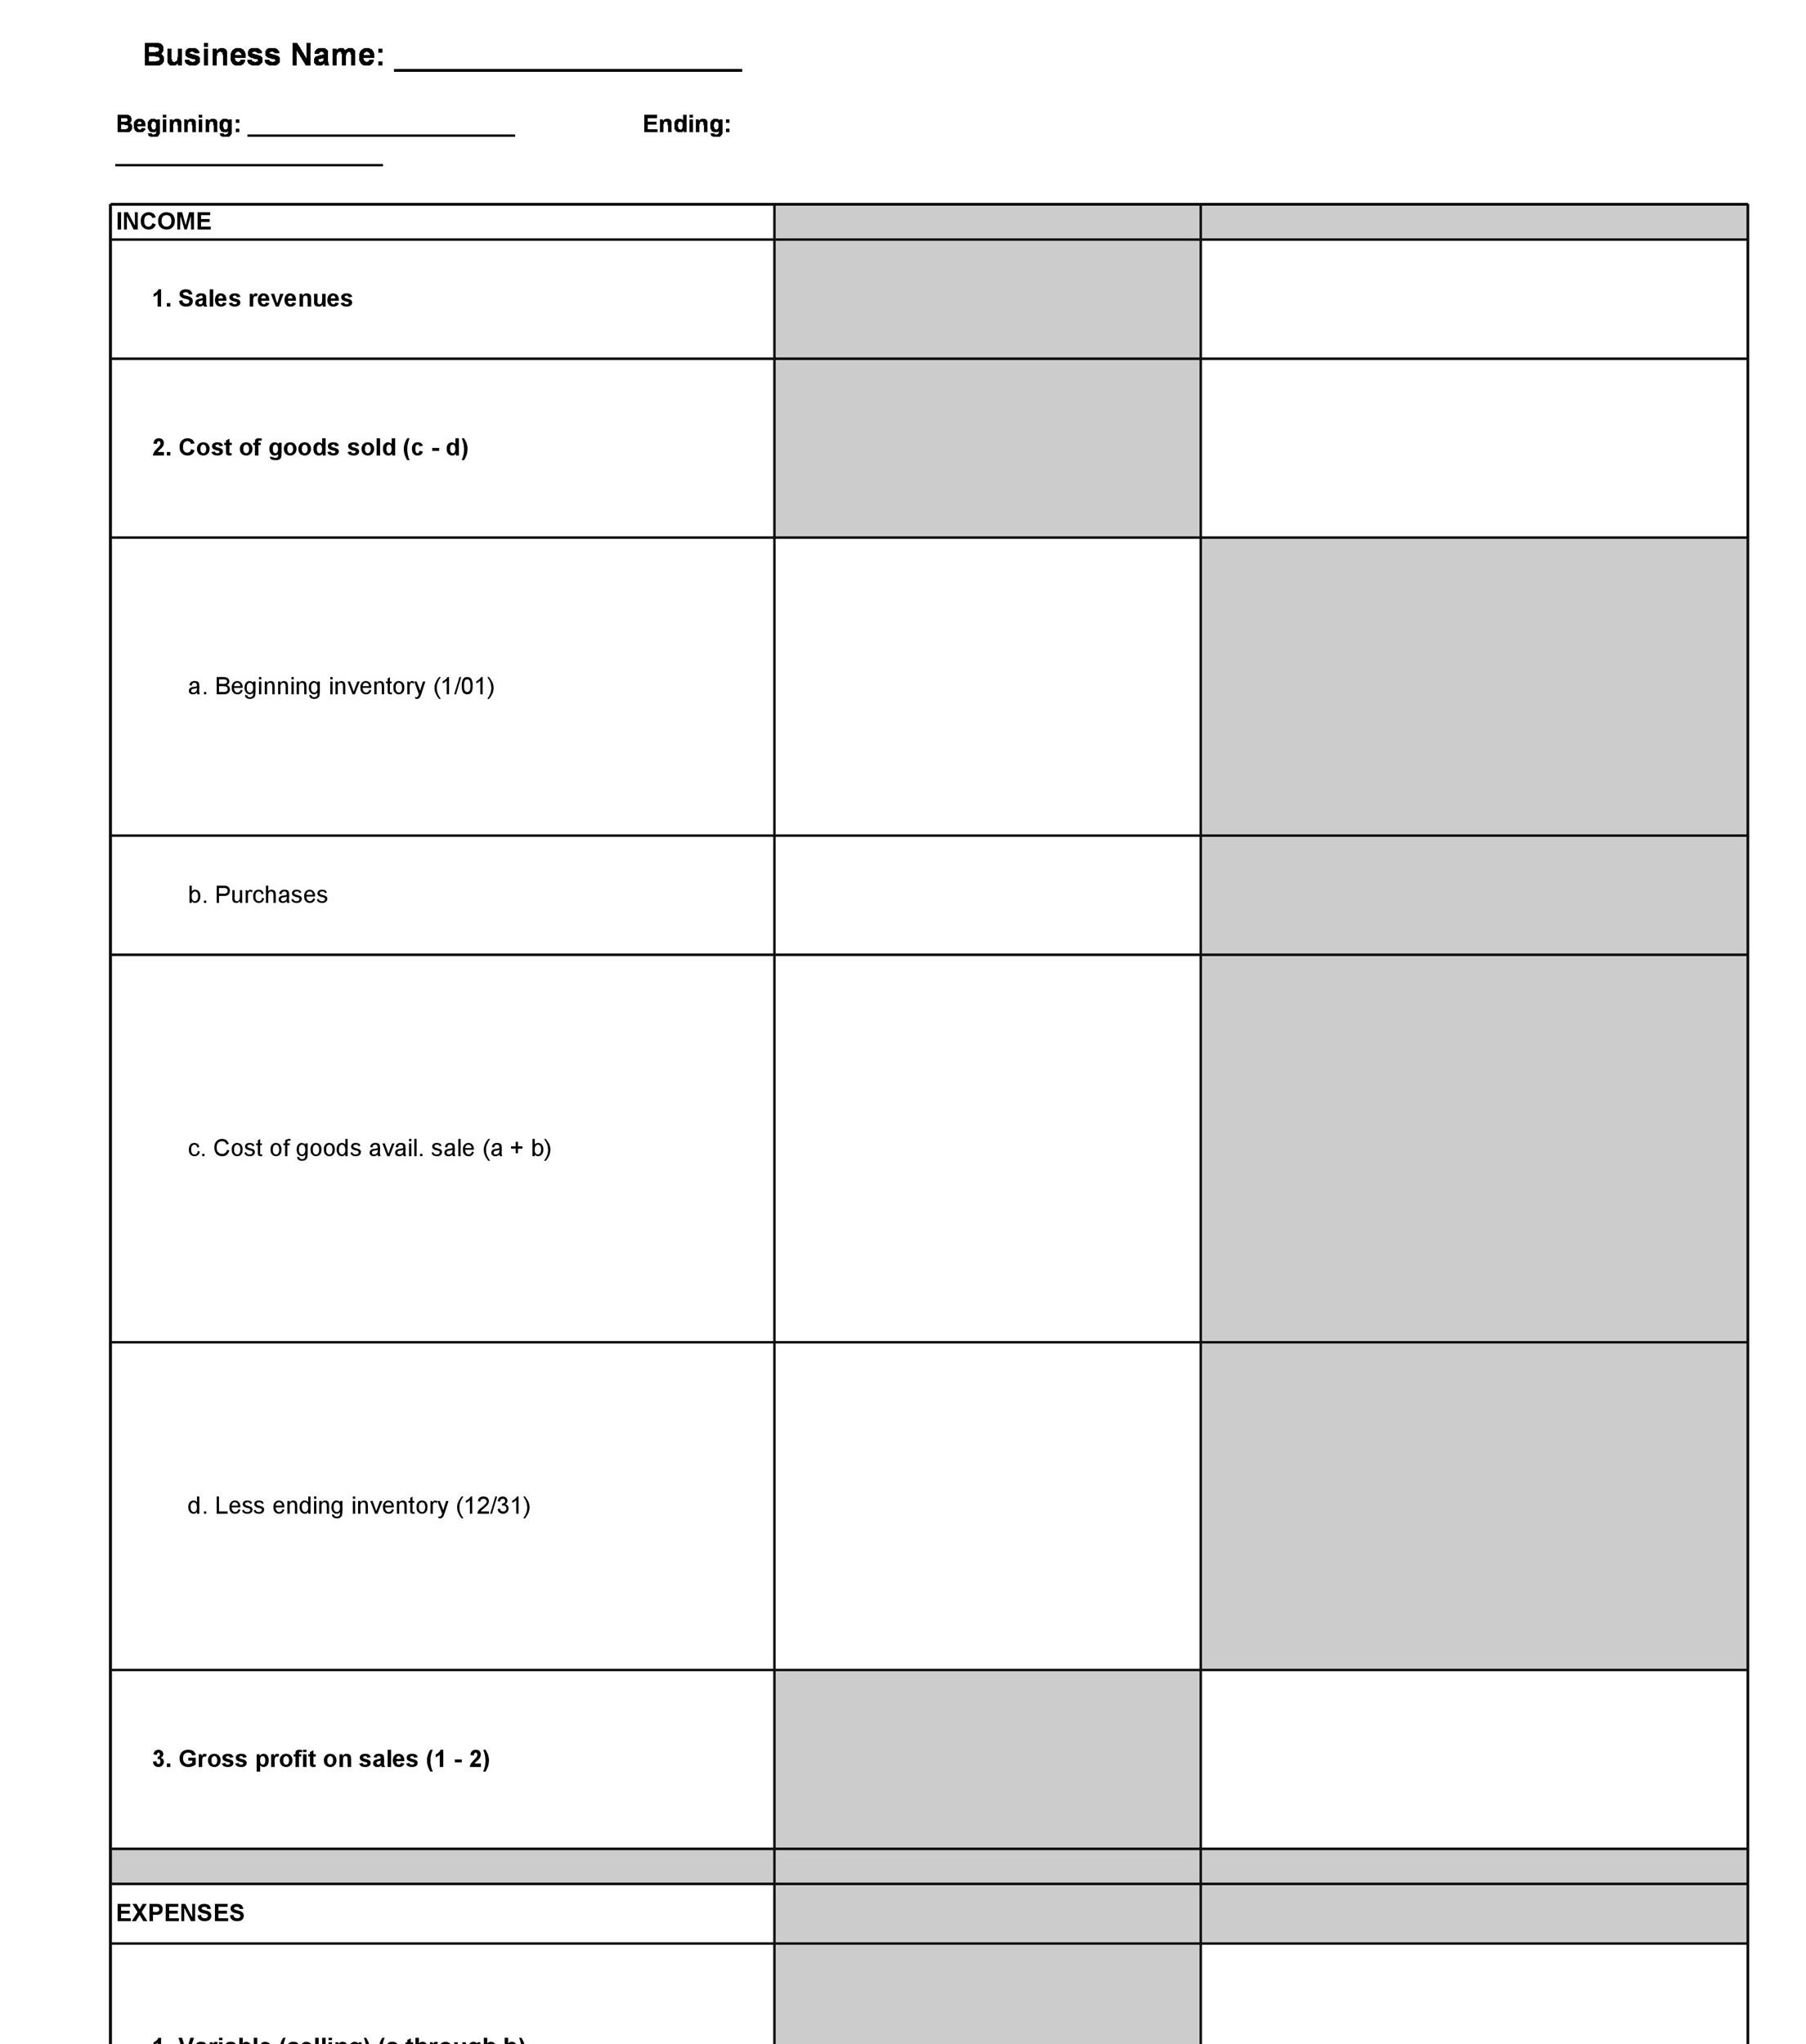 Basic Profit And Loss Statement Template 35 Profit And Loss Statement Templates & Forms